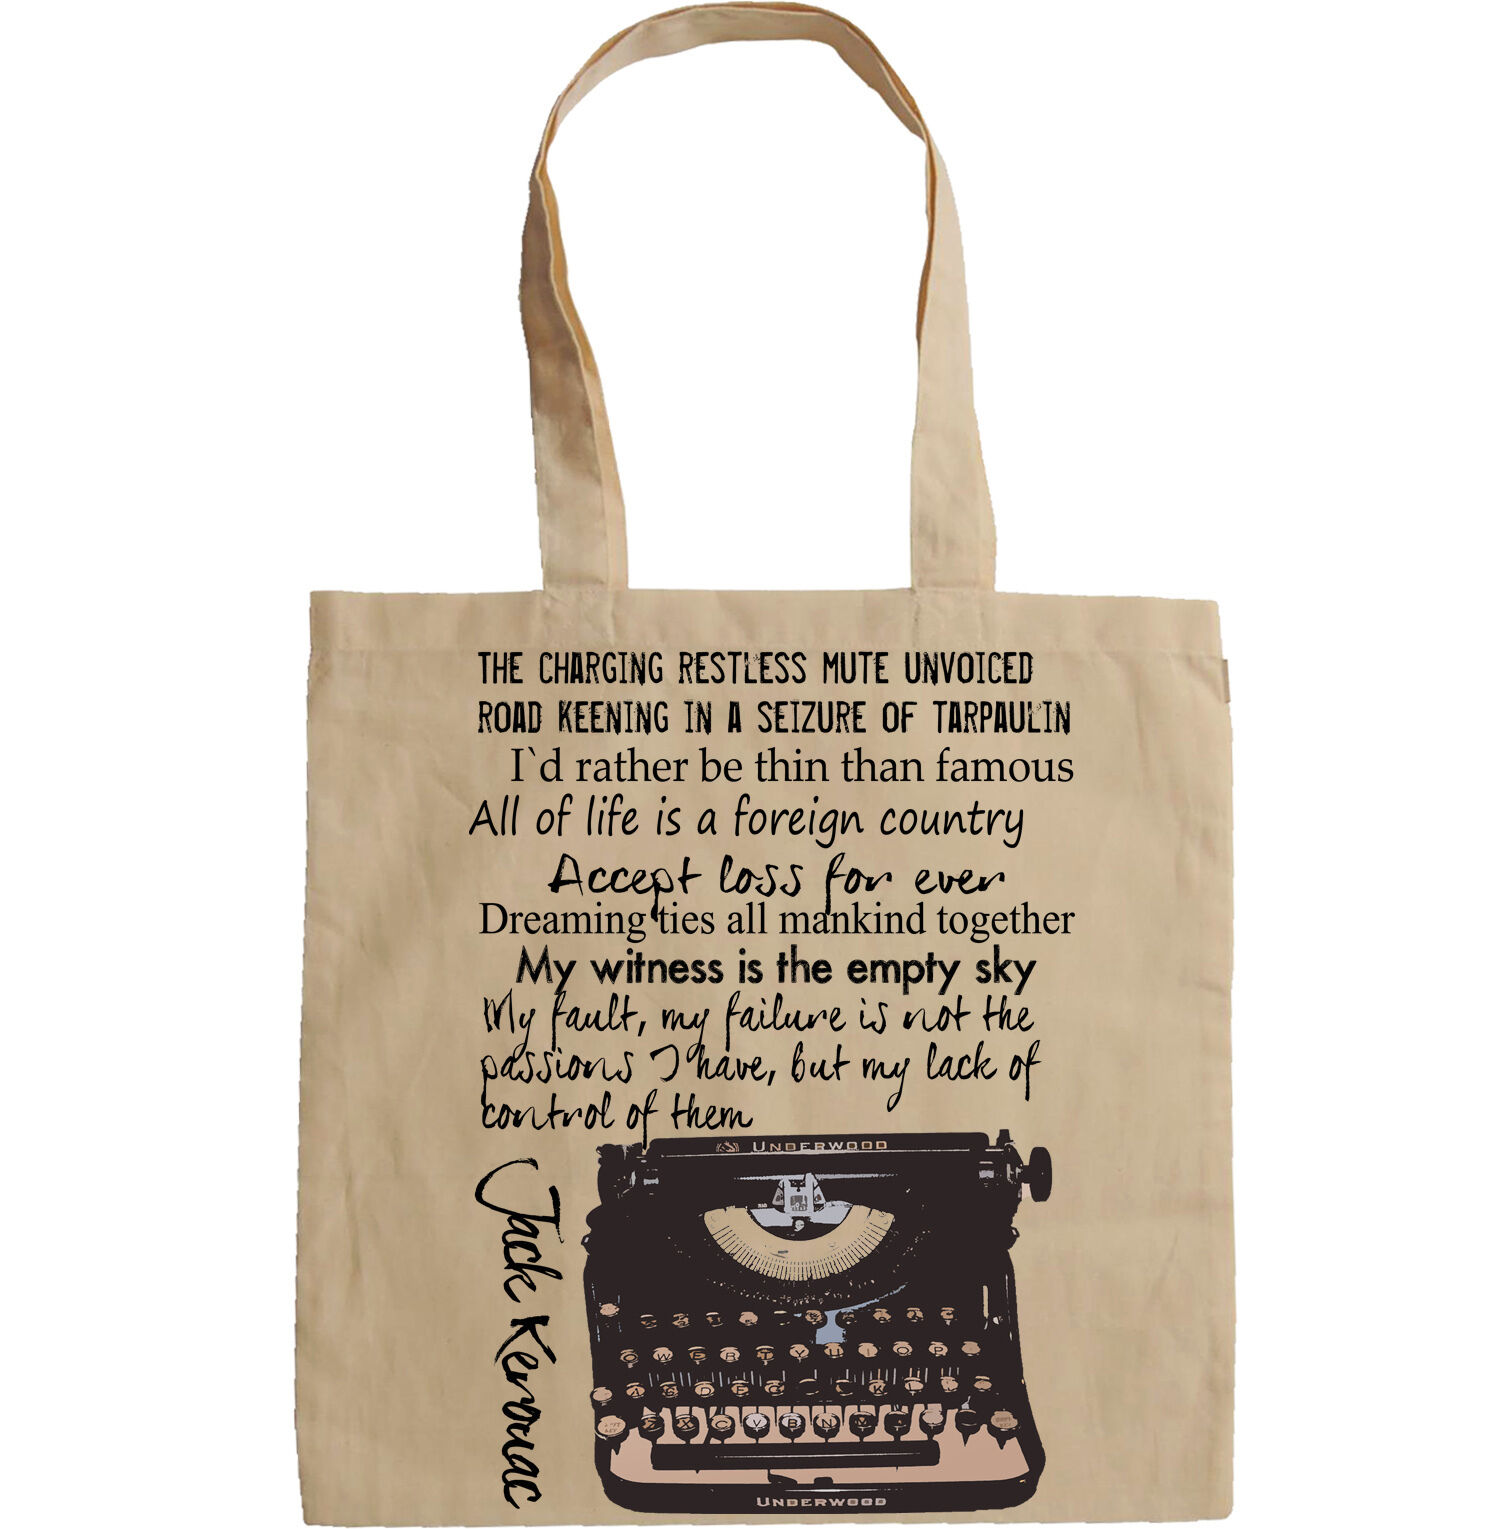 Details about JACK KEROUAC TYPE WRITER QUOTES - NEW AMAZING GRAPHIC HAND  BAG/TOTE BAG